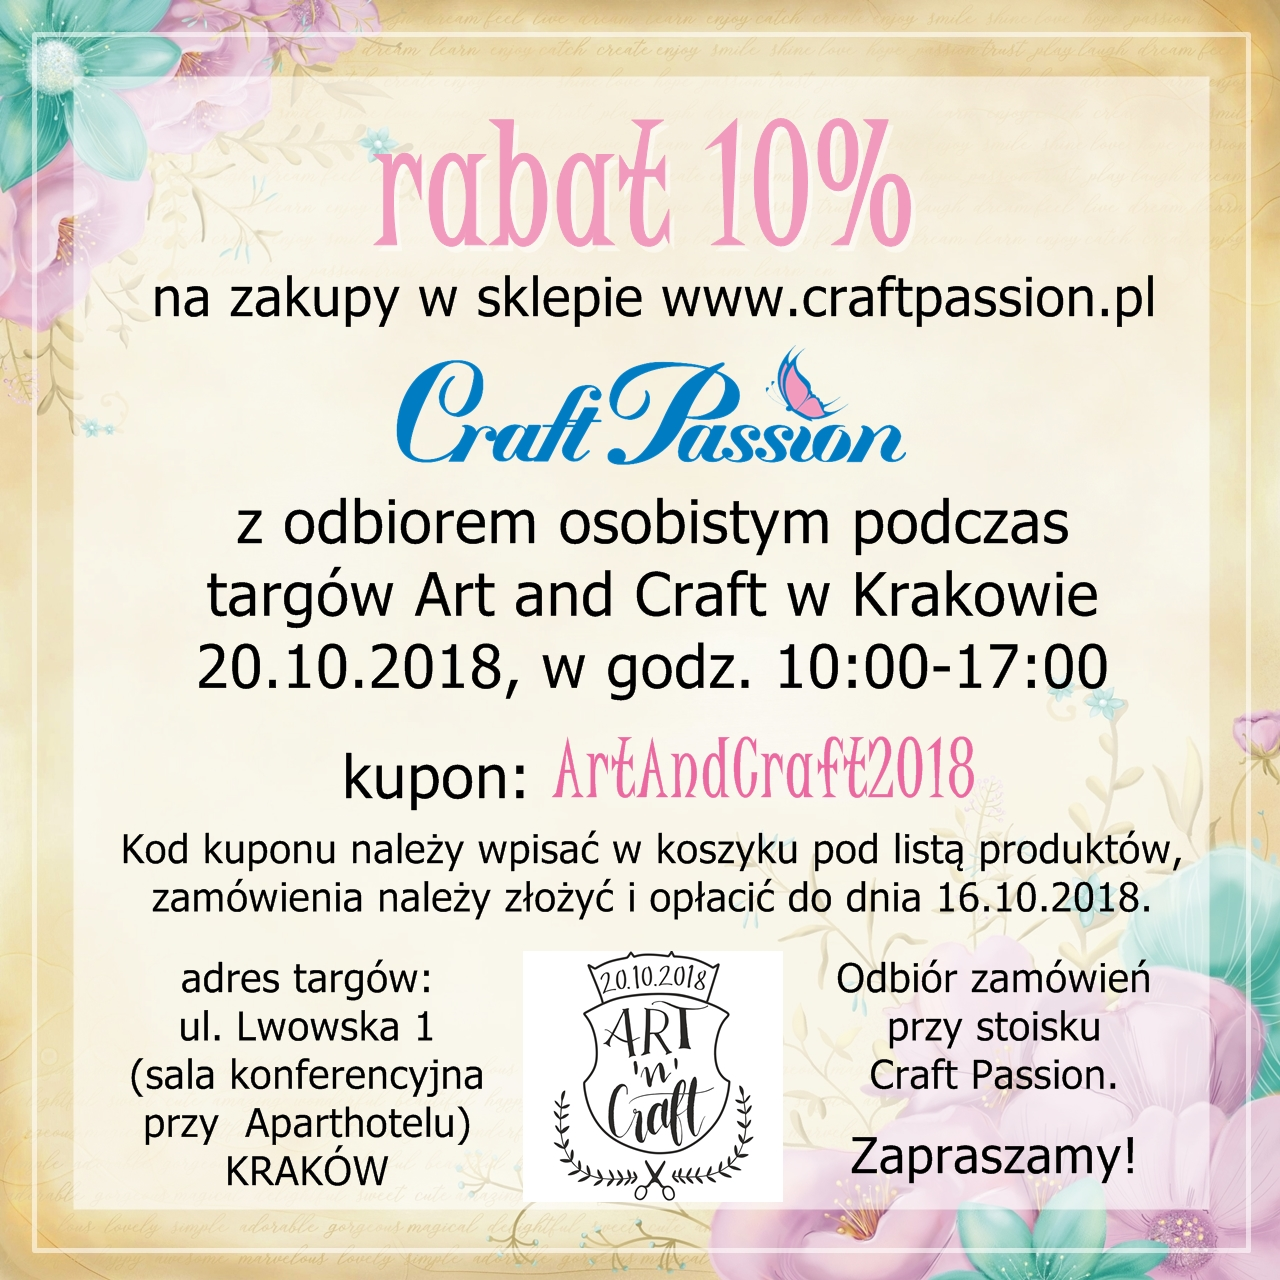 Art and Craft Kraków 20.10.2018